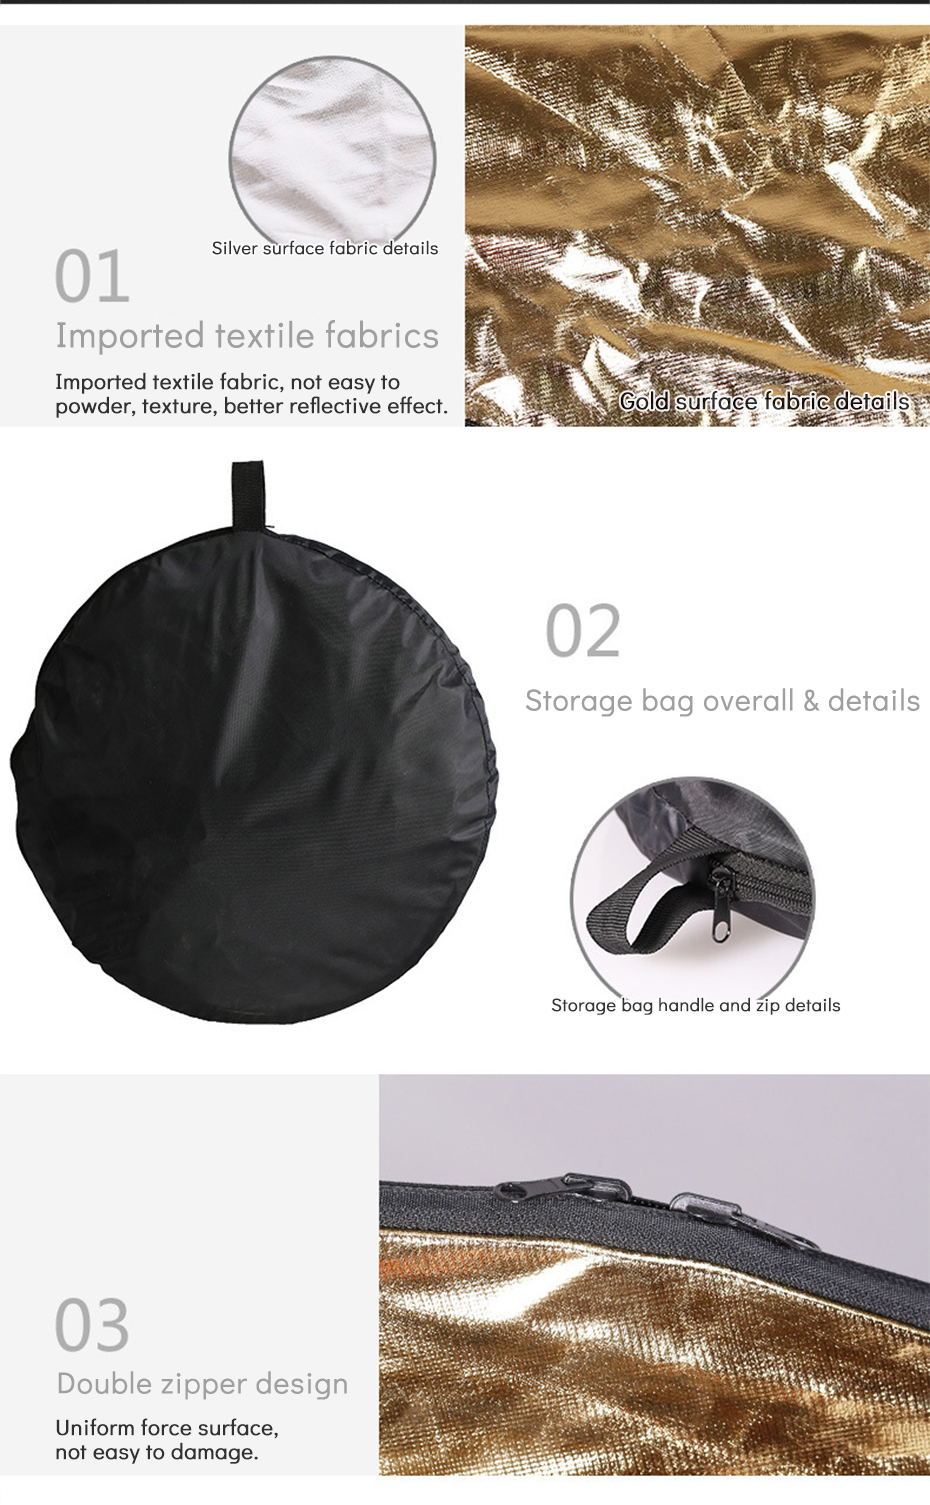 TiYiViRi 60CM 80CM 5 in 1 Collapsible Multi-Disc Light Reflector Round PhotographyPhoto Reflector with Cariing Bag for Studio (2)